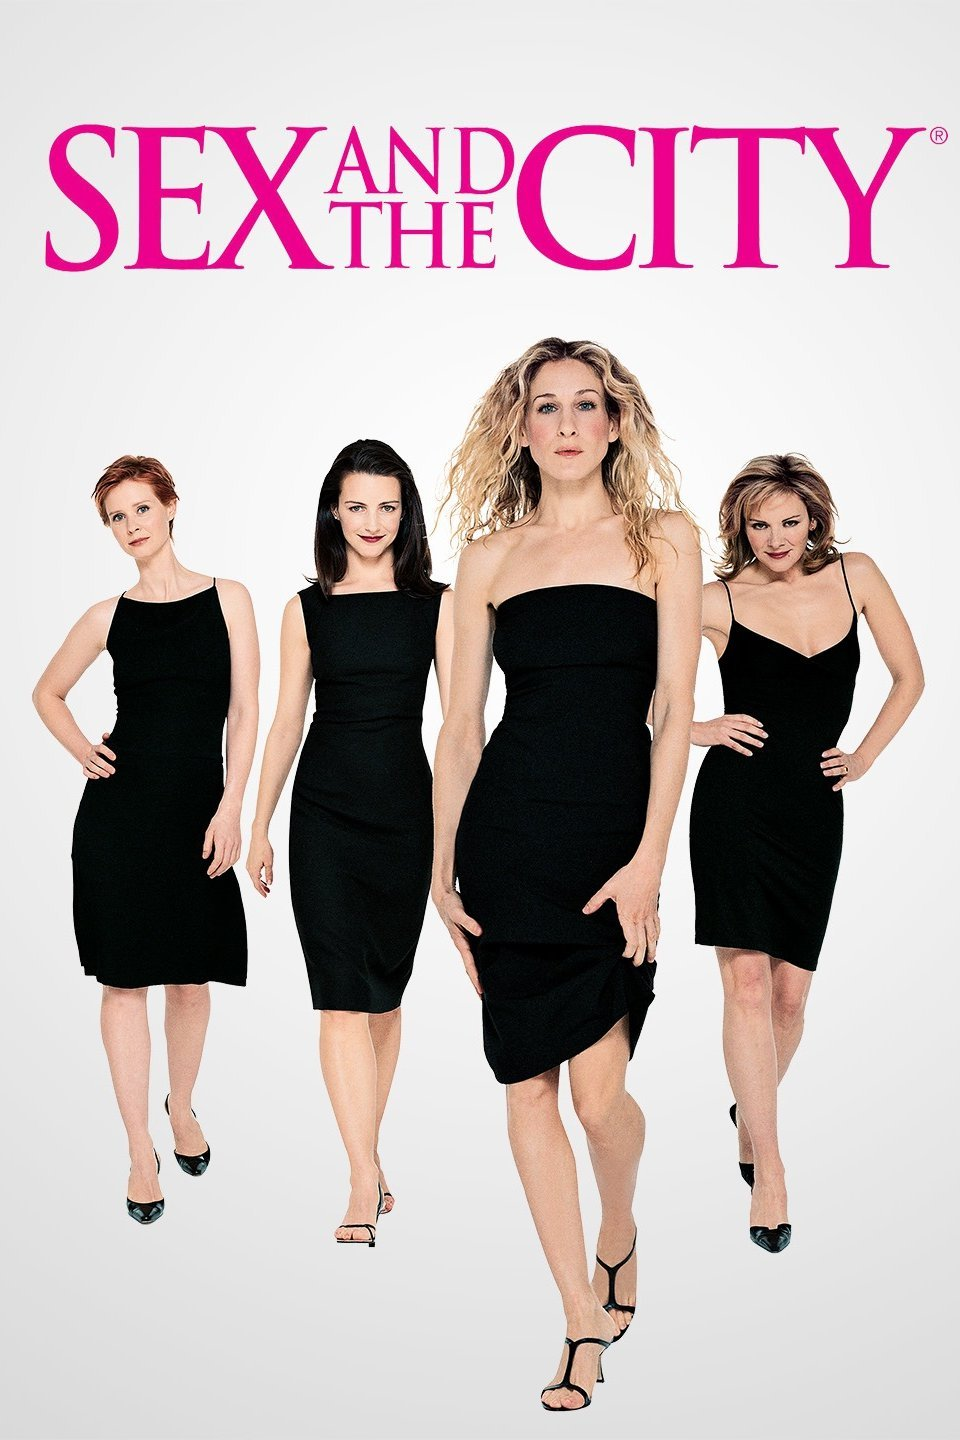 Sex and the city plot summary